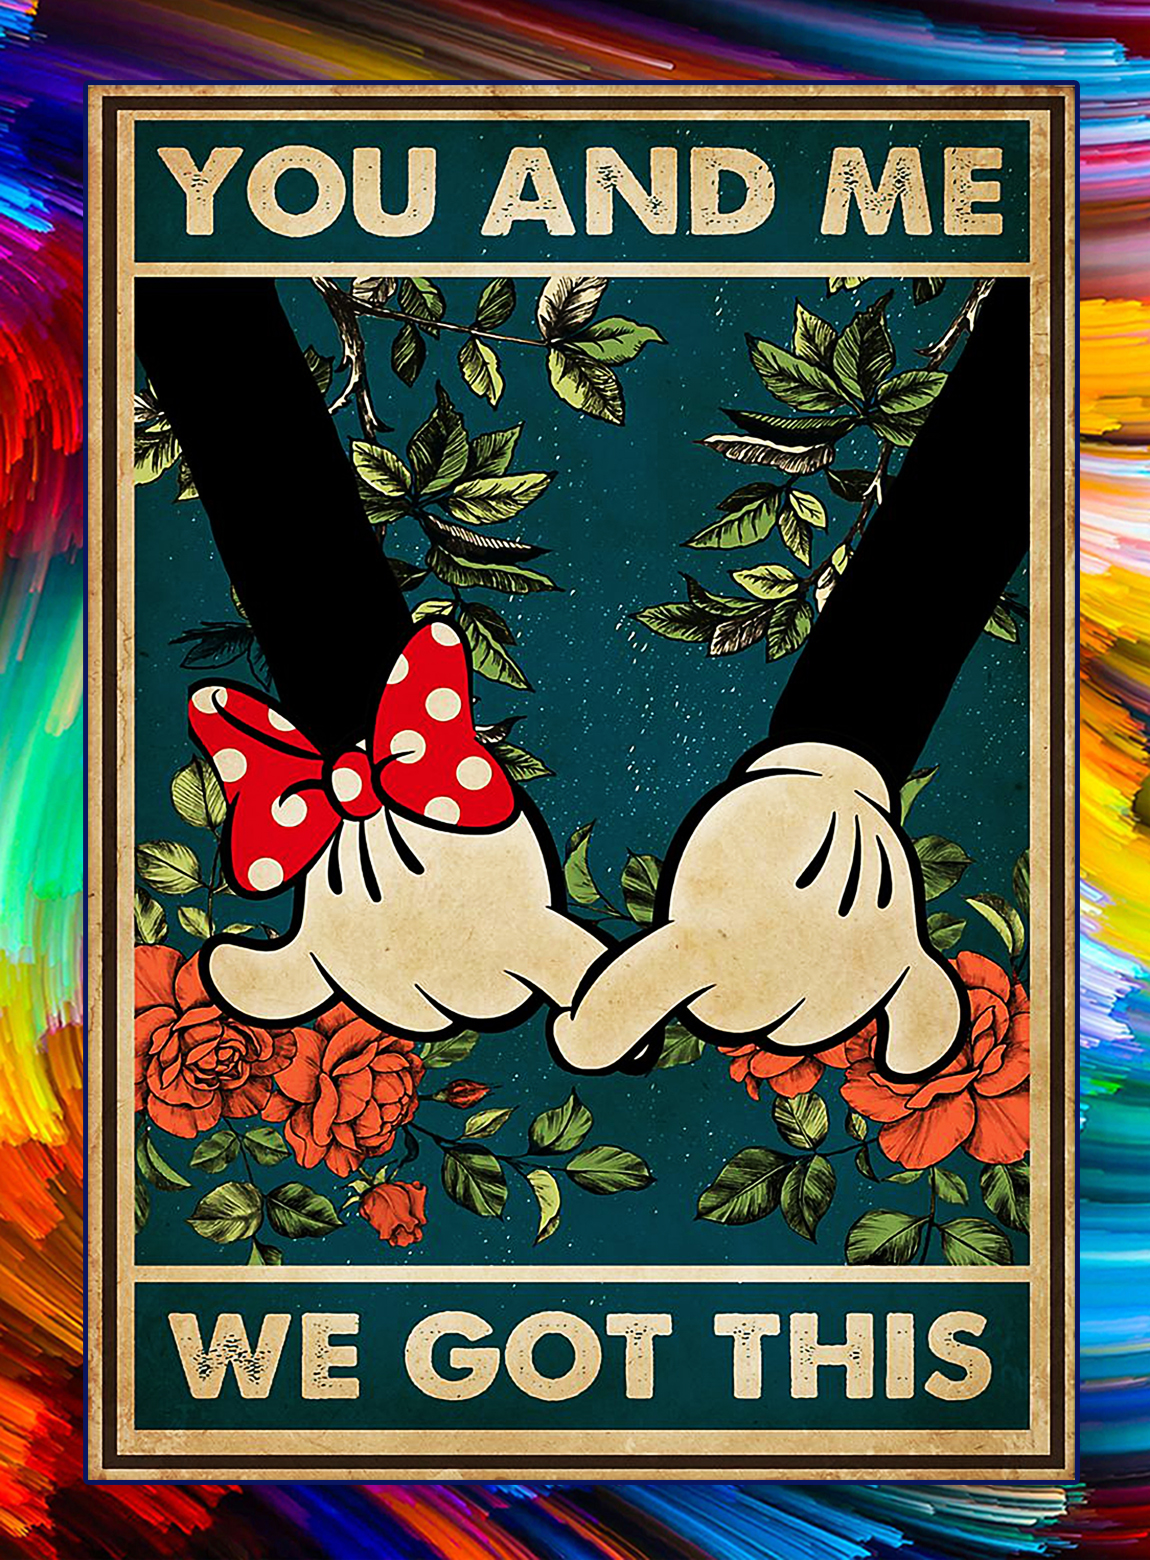 You and me we got this mickey and minnie poster - A3